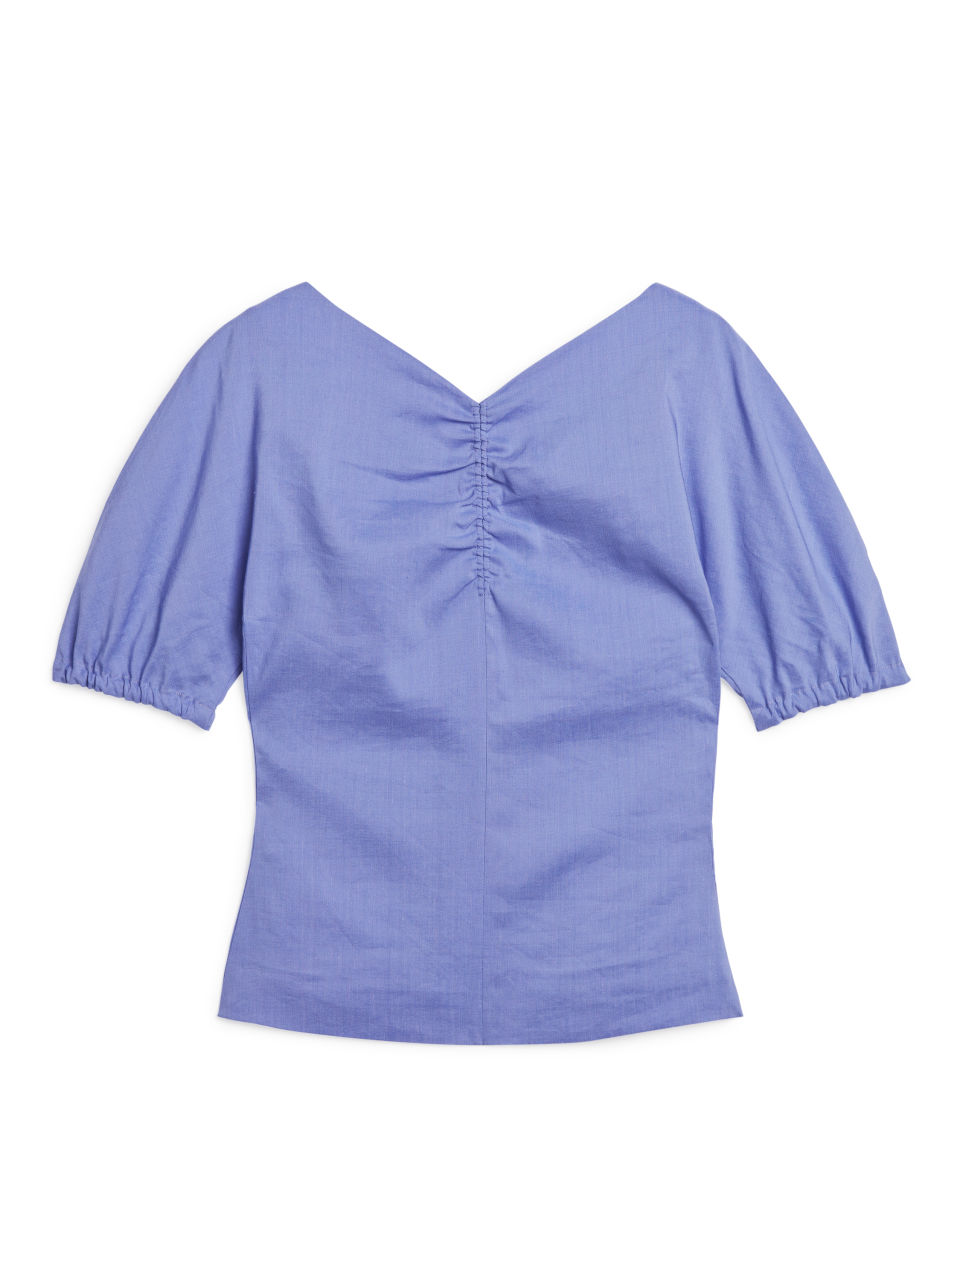 Ruched Lined Blouse - Blue